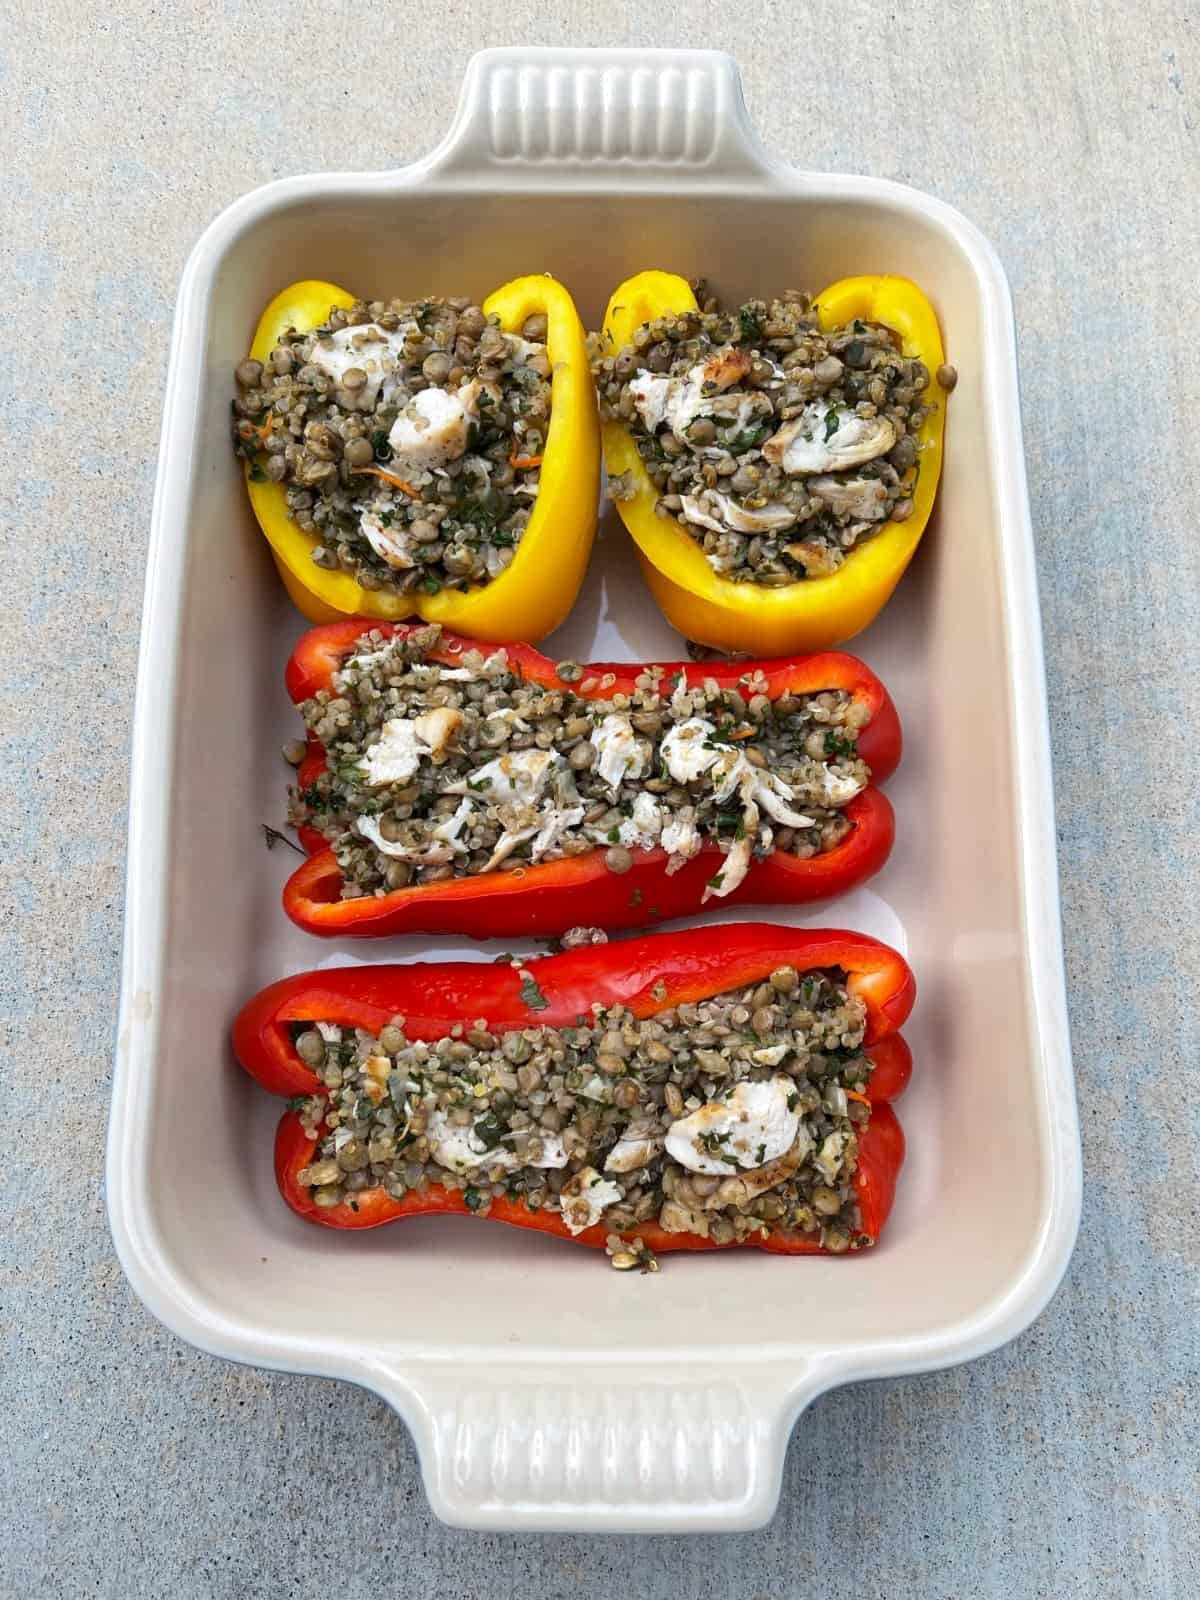 Leftover Mediterranean lentil and quinoa stuffed peppers in baking dish.